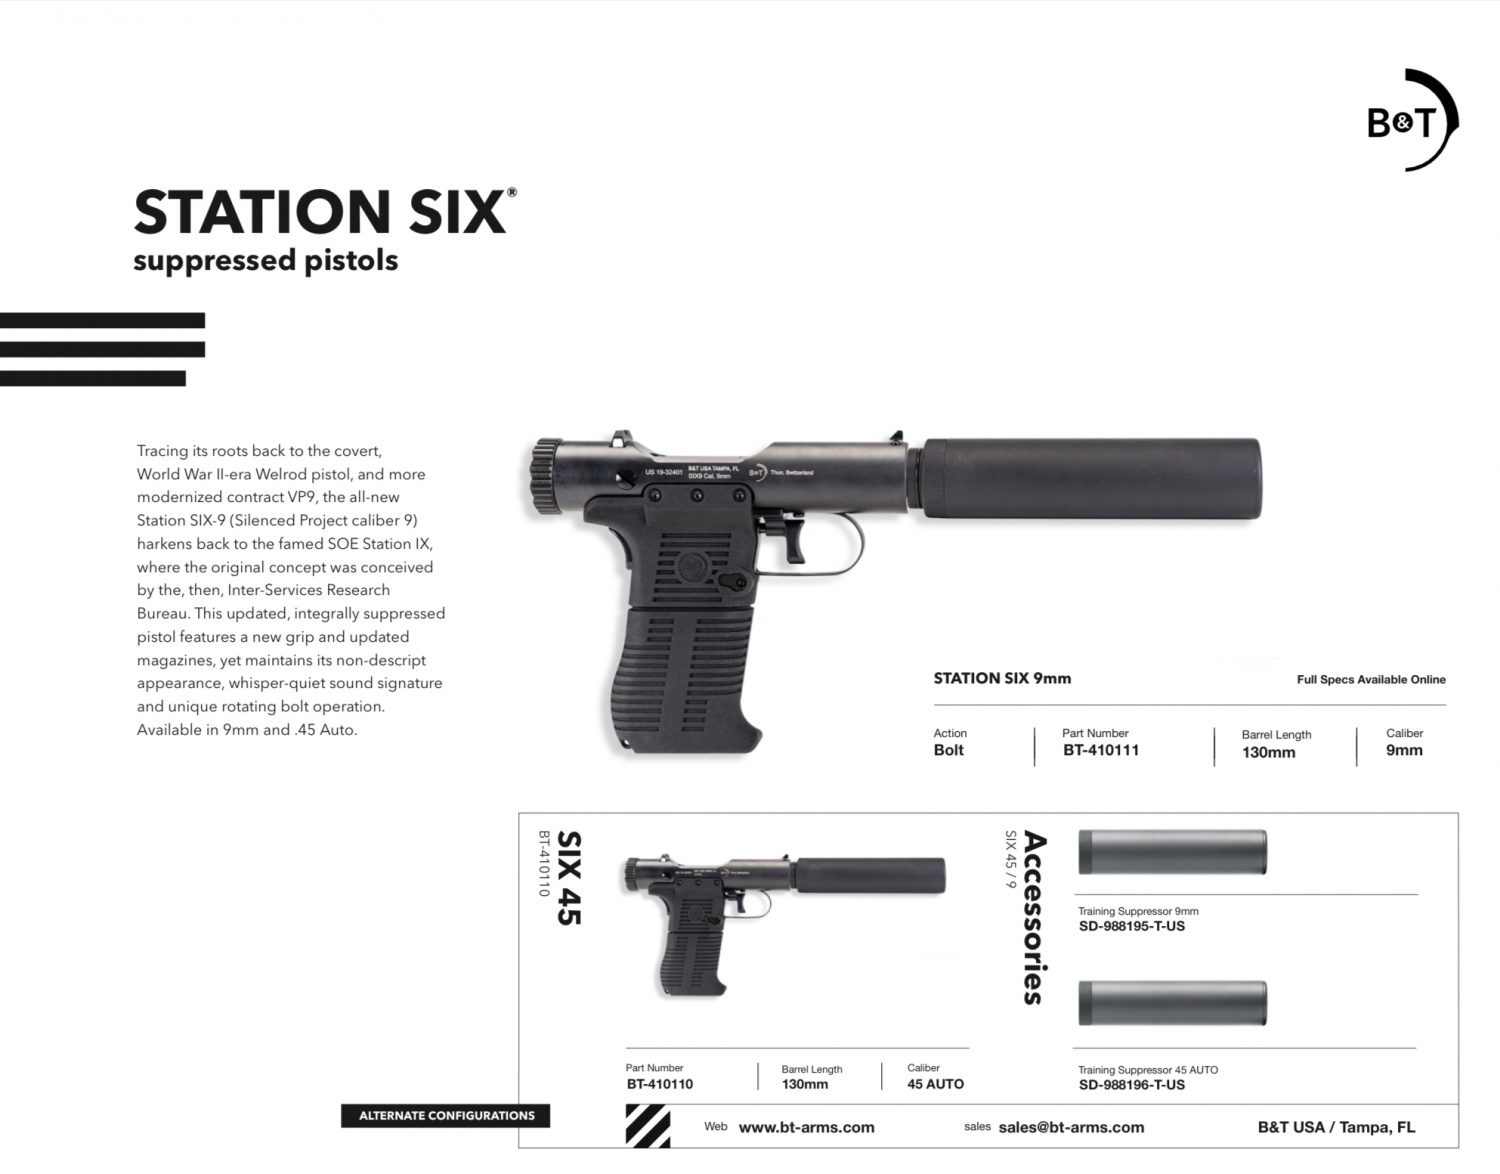 [TFB GUNFEST] Historic, Stealthy And Sexy - B&T Station SIX